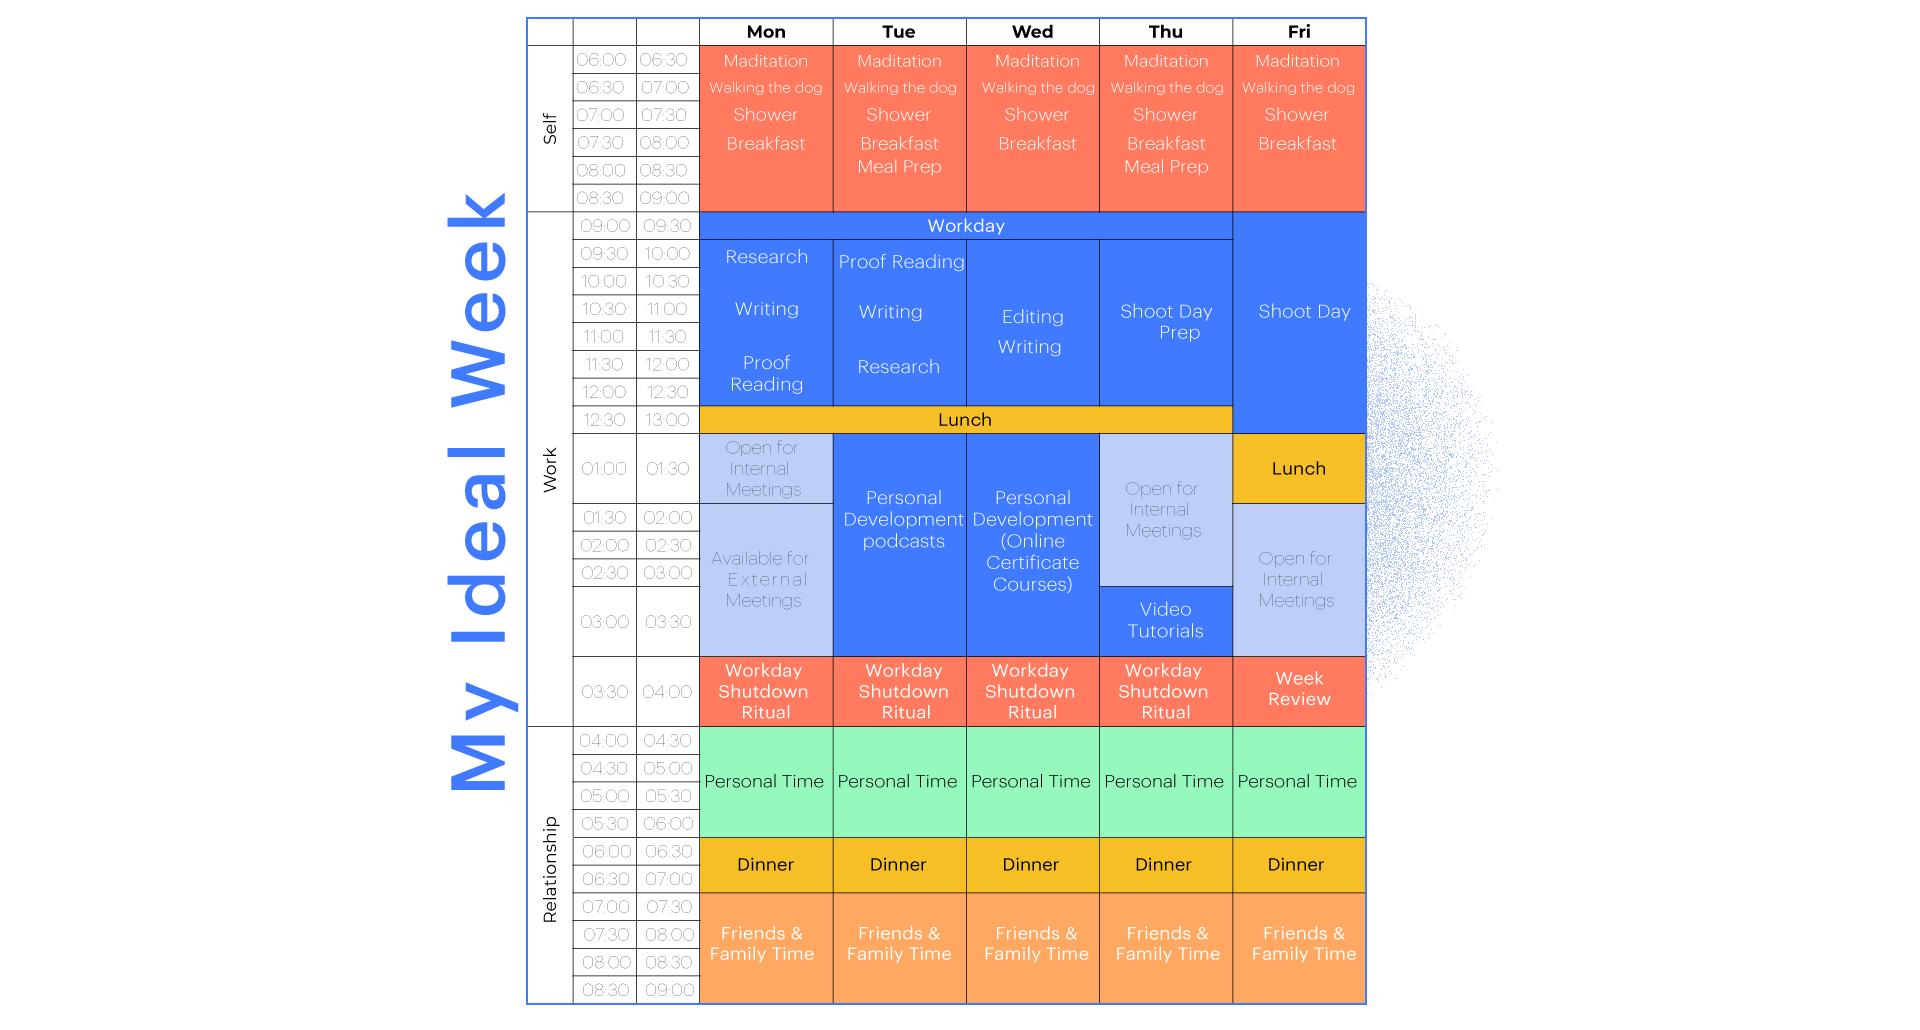 With the list of chores and the estimated time for each, now it's time for you to move the ideal week plan to your calendar or a hard-copy planner. Assign each activity to a time slot in your calendar.